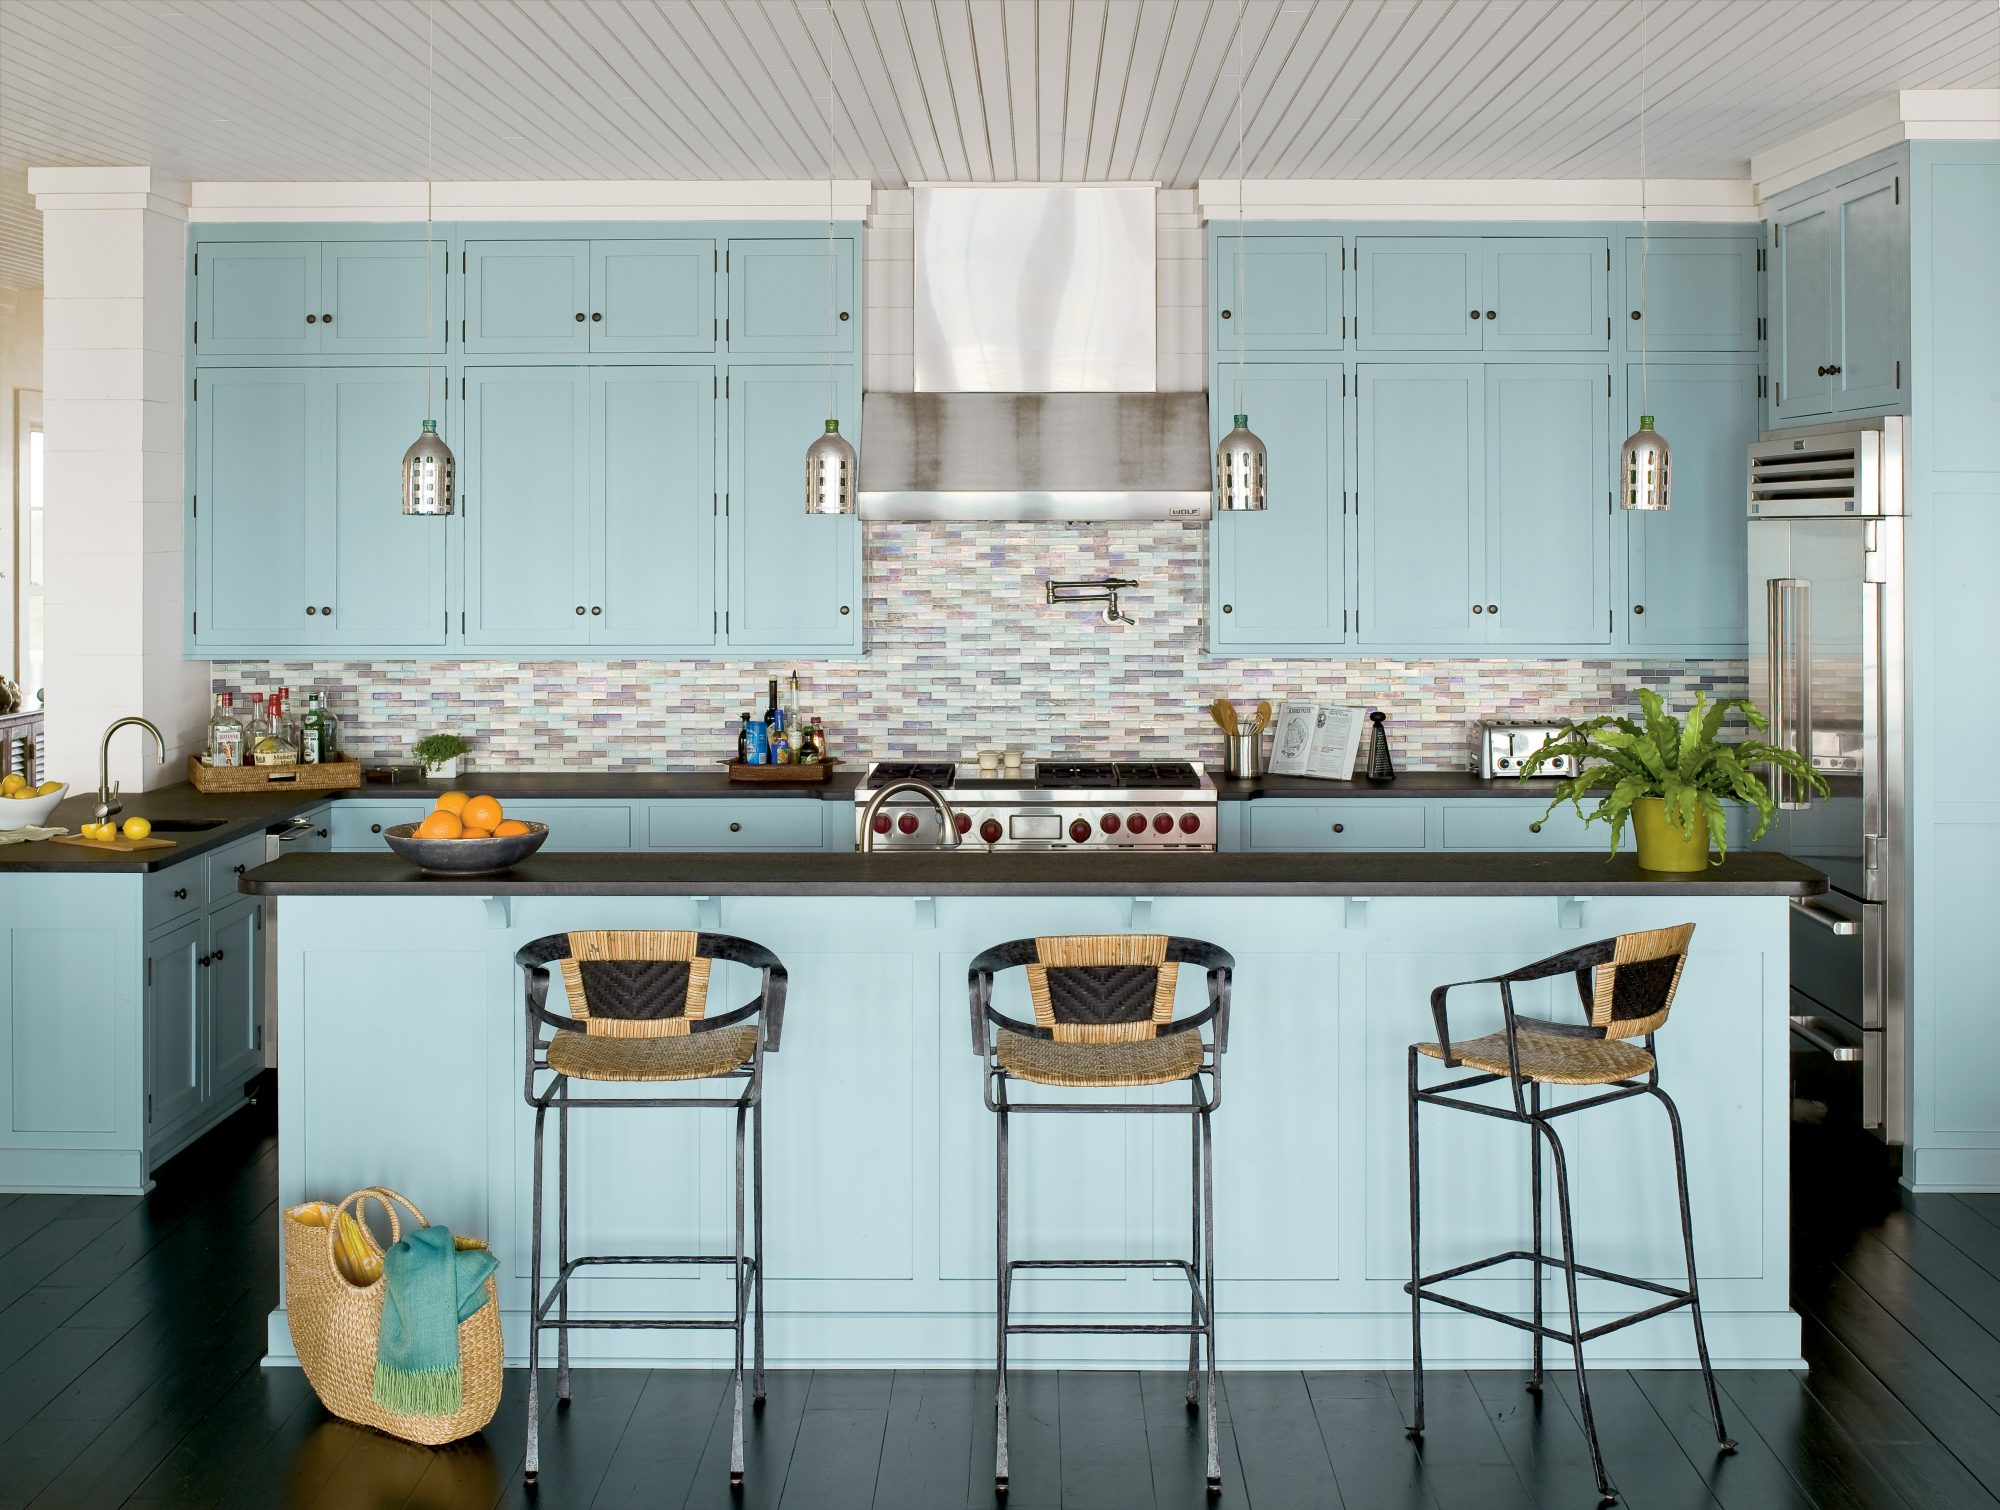 Atlanta-based Designer Carter Kay started with the tile in this DeBordieu, South Carolina, kitchen, and the color inspired the palette for the entire house. A hint of iridescent shimmer sets off the blue cabinetry and sandy trim and ceiling. A light-blue